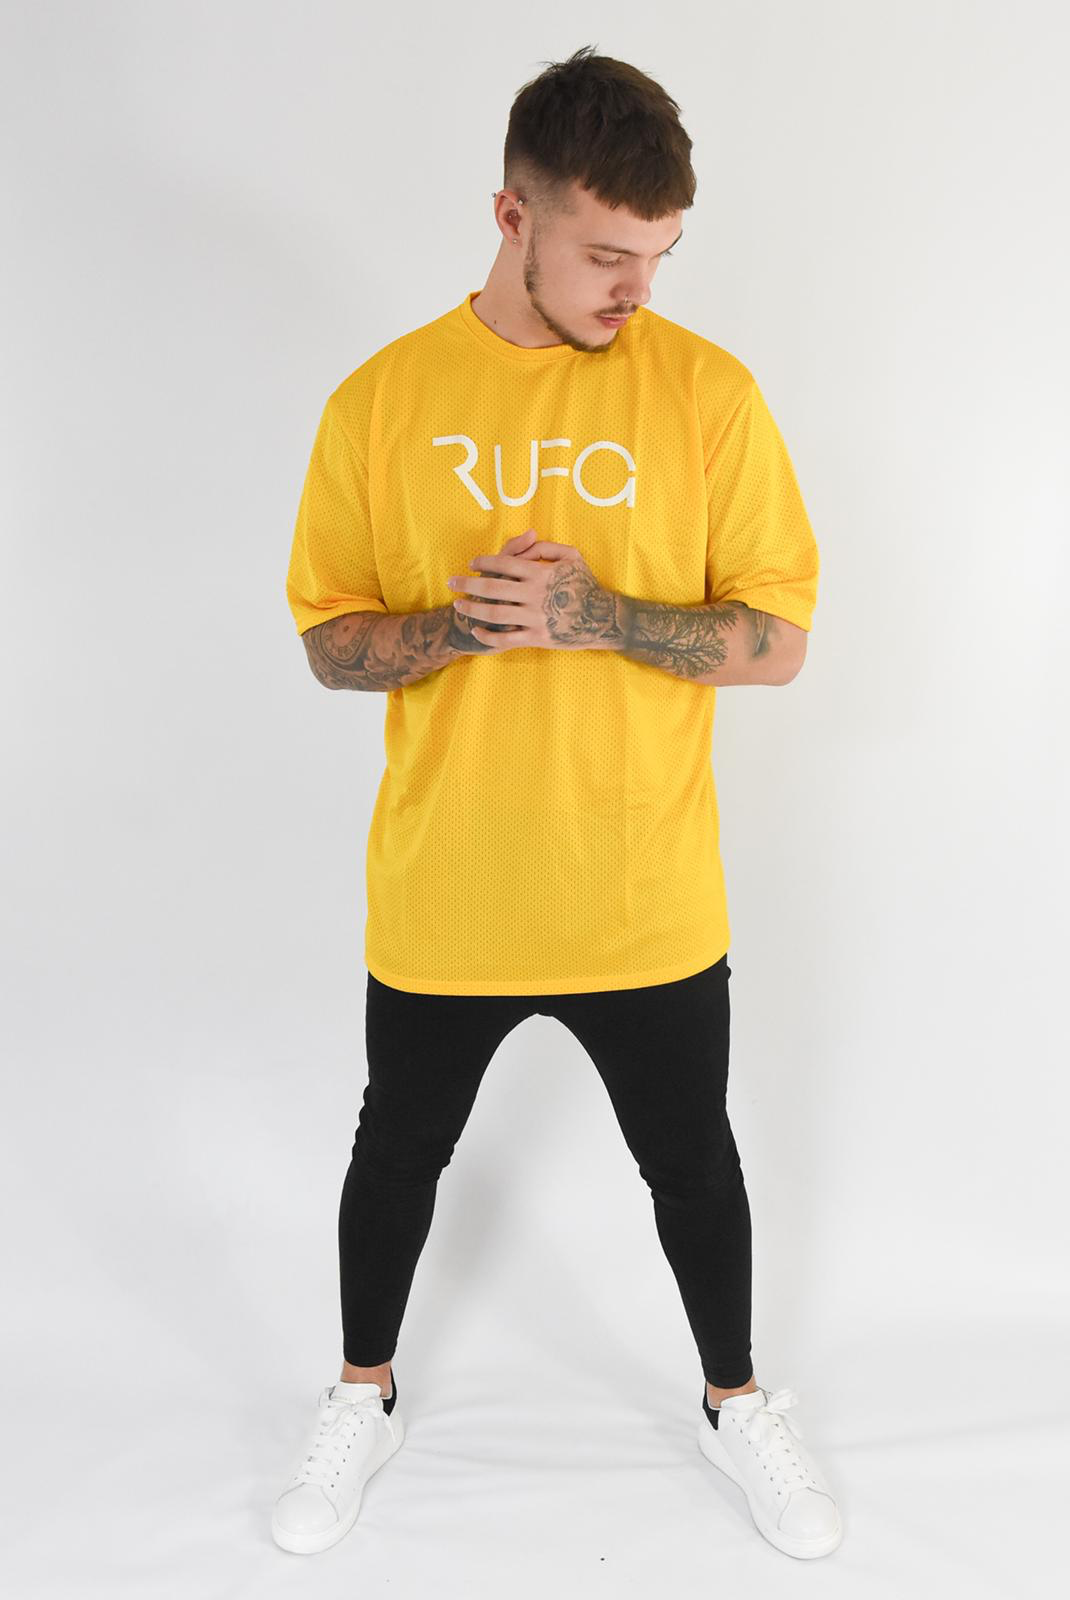 Yellow - Oversized RUFG Mesh Tee